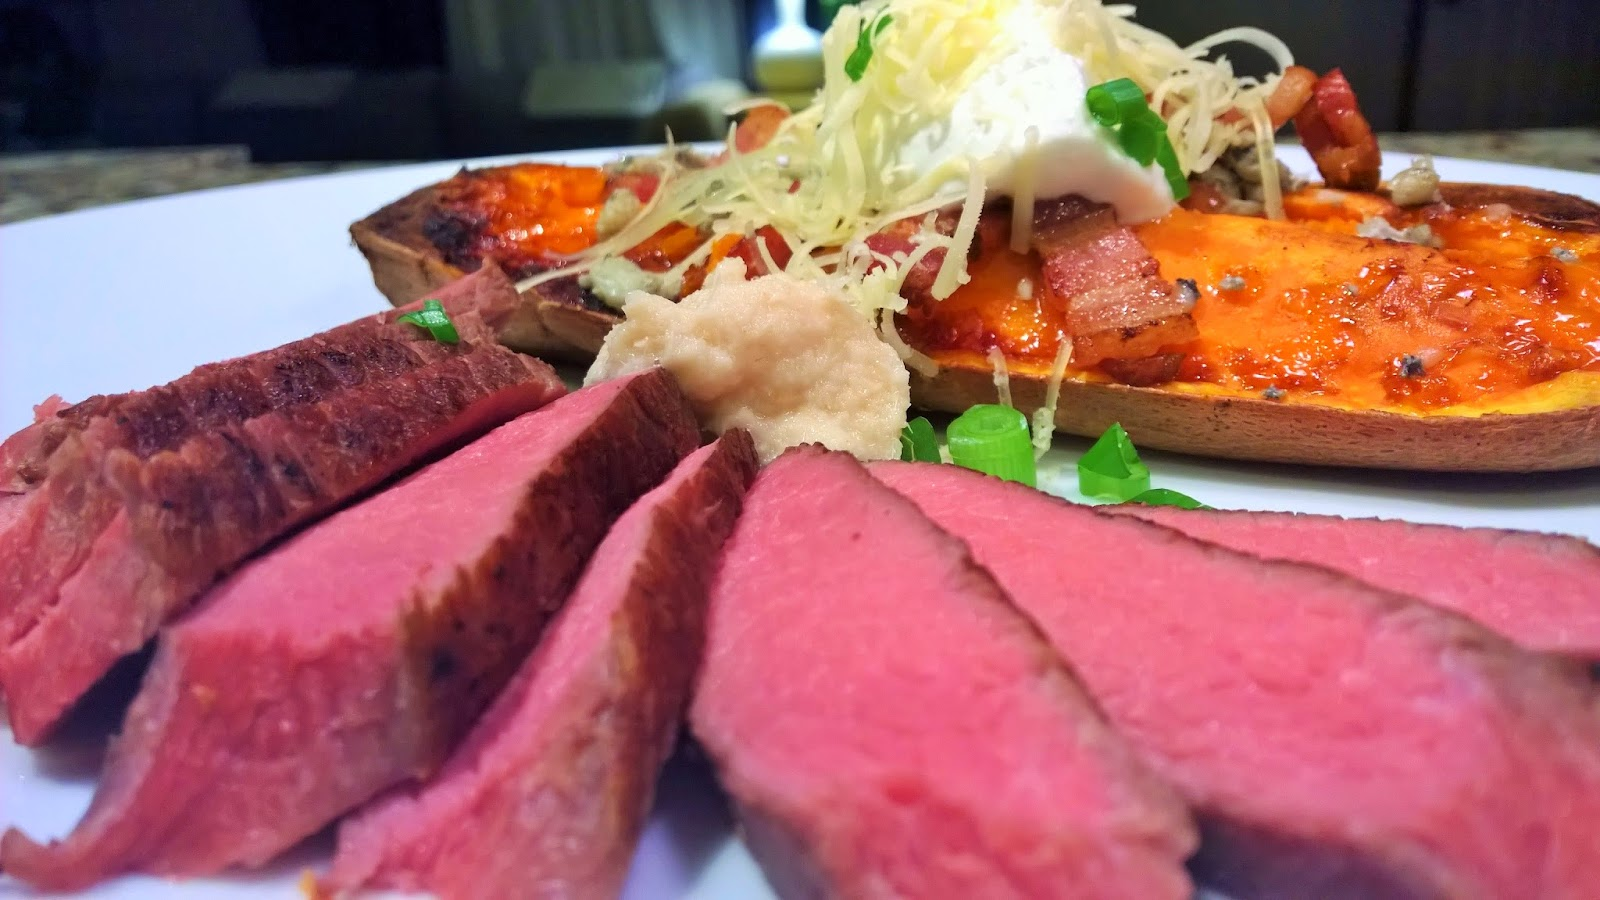 Sous Vide Grassfed Sirloin Steak w/ Loaded Baked Sweet Potato